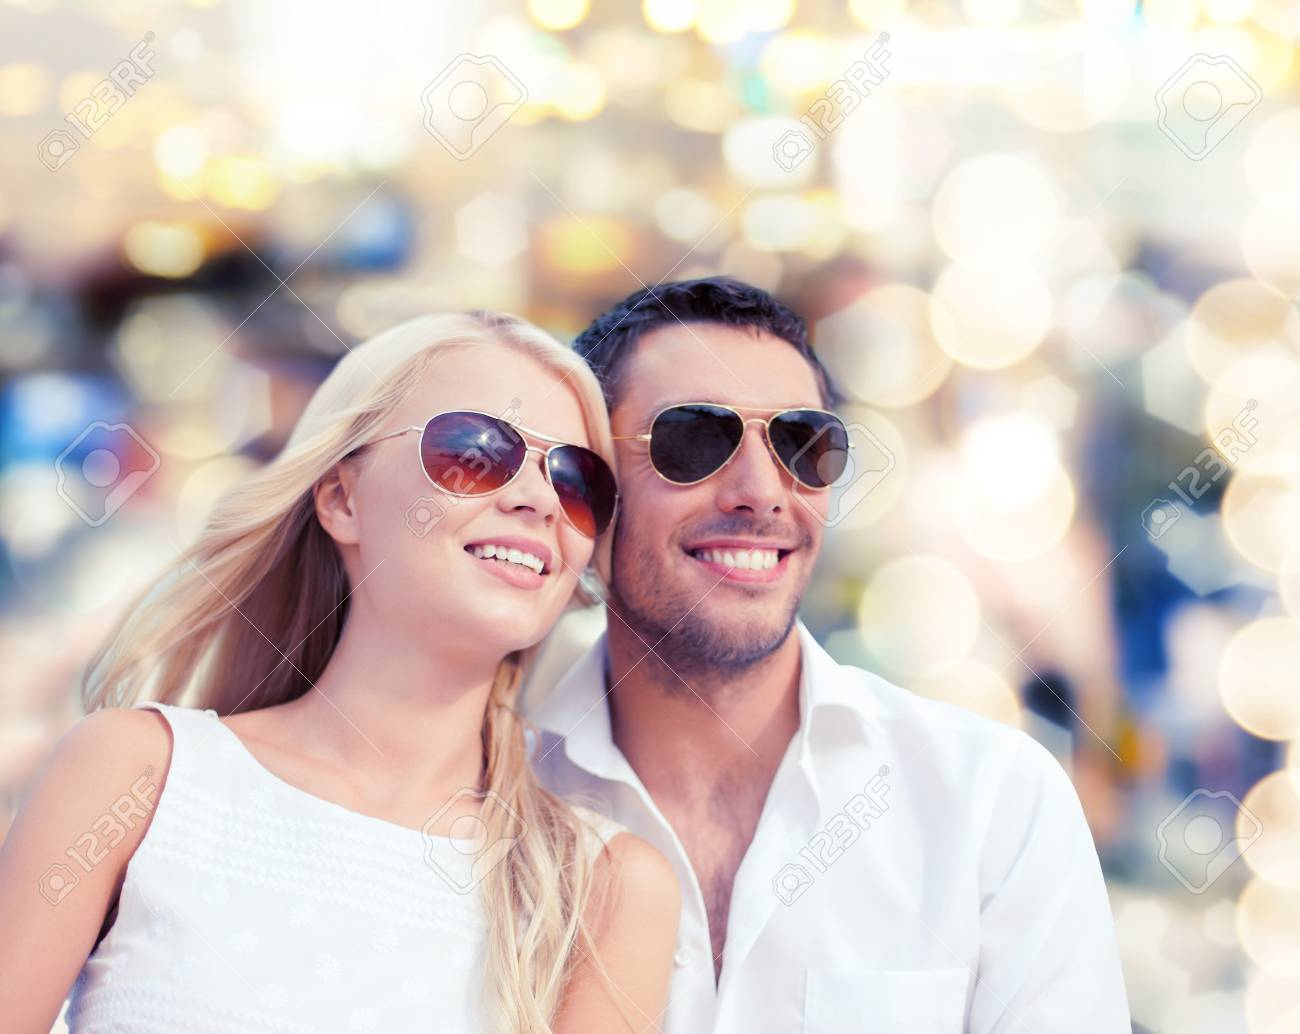 Online dating websites like Plenty of Fish and Match.com see a spike in new users and activity on first Sunday after the holidays are over..